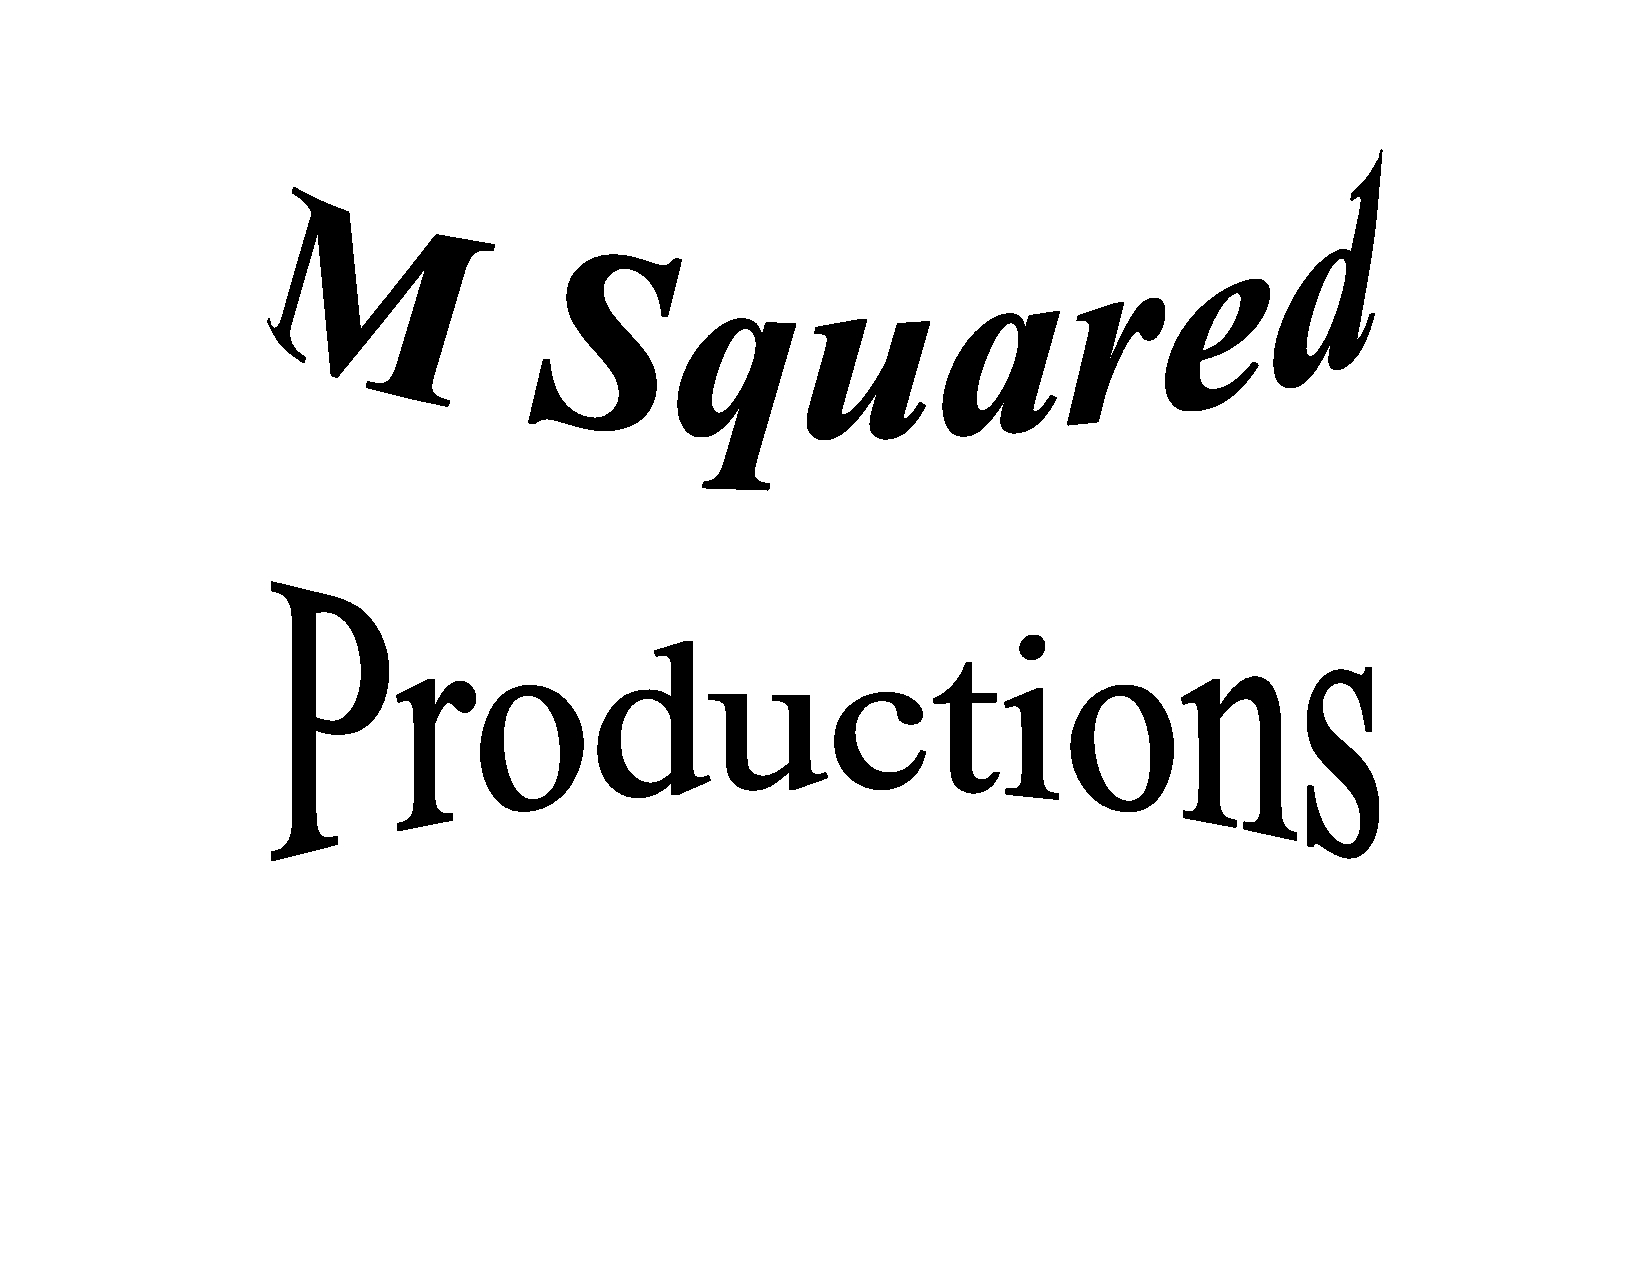 msquaredproductions logo